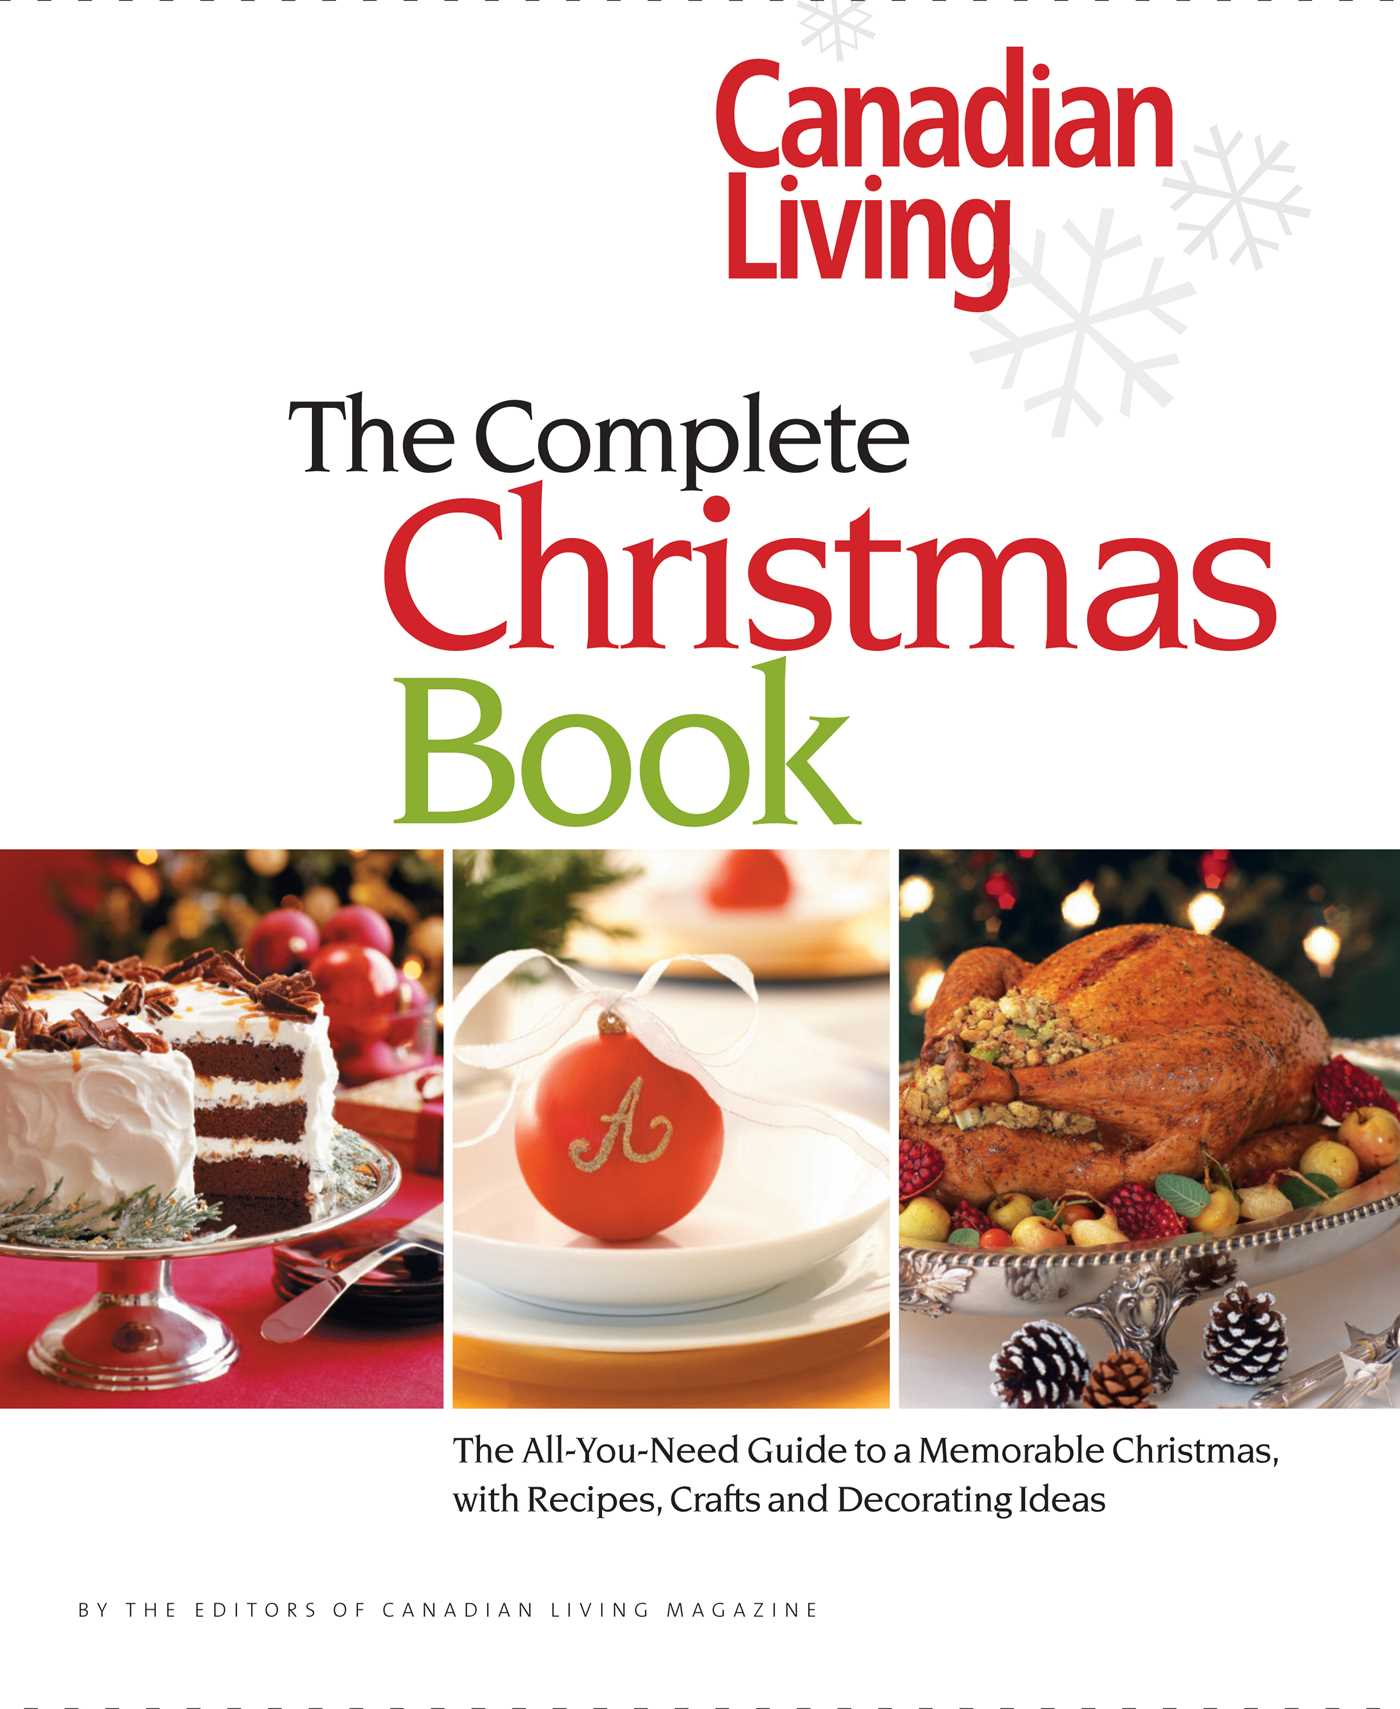 Canadian living the complete christmas book book by canadian book cover image jpg canadian living the complete christmas book forumfinder Image collections